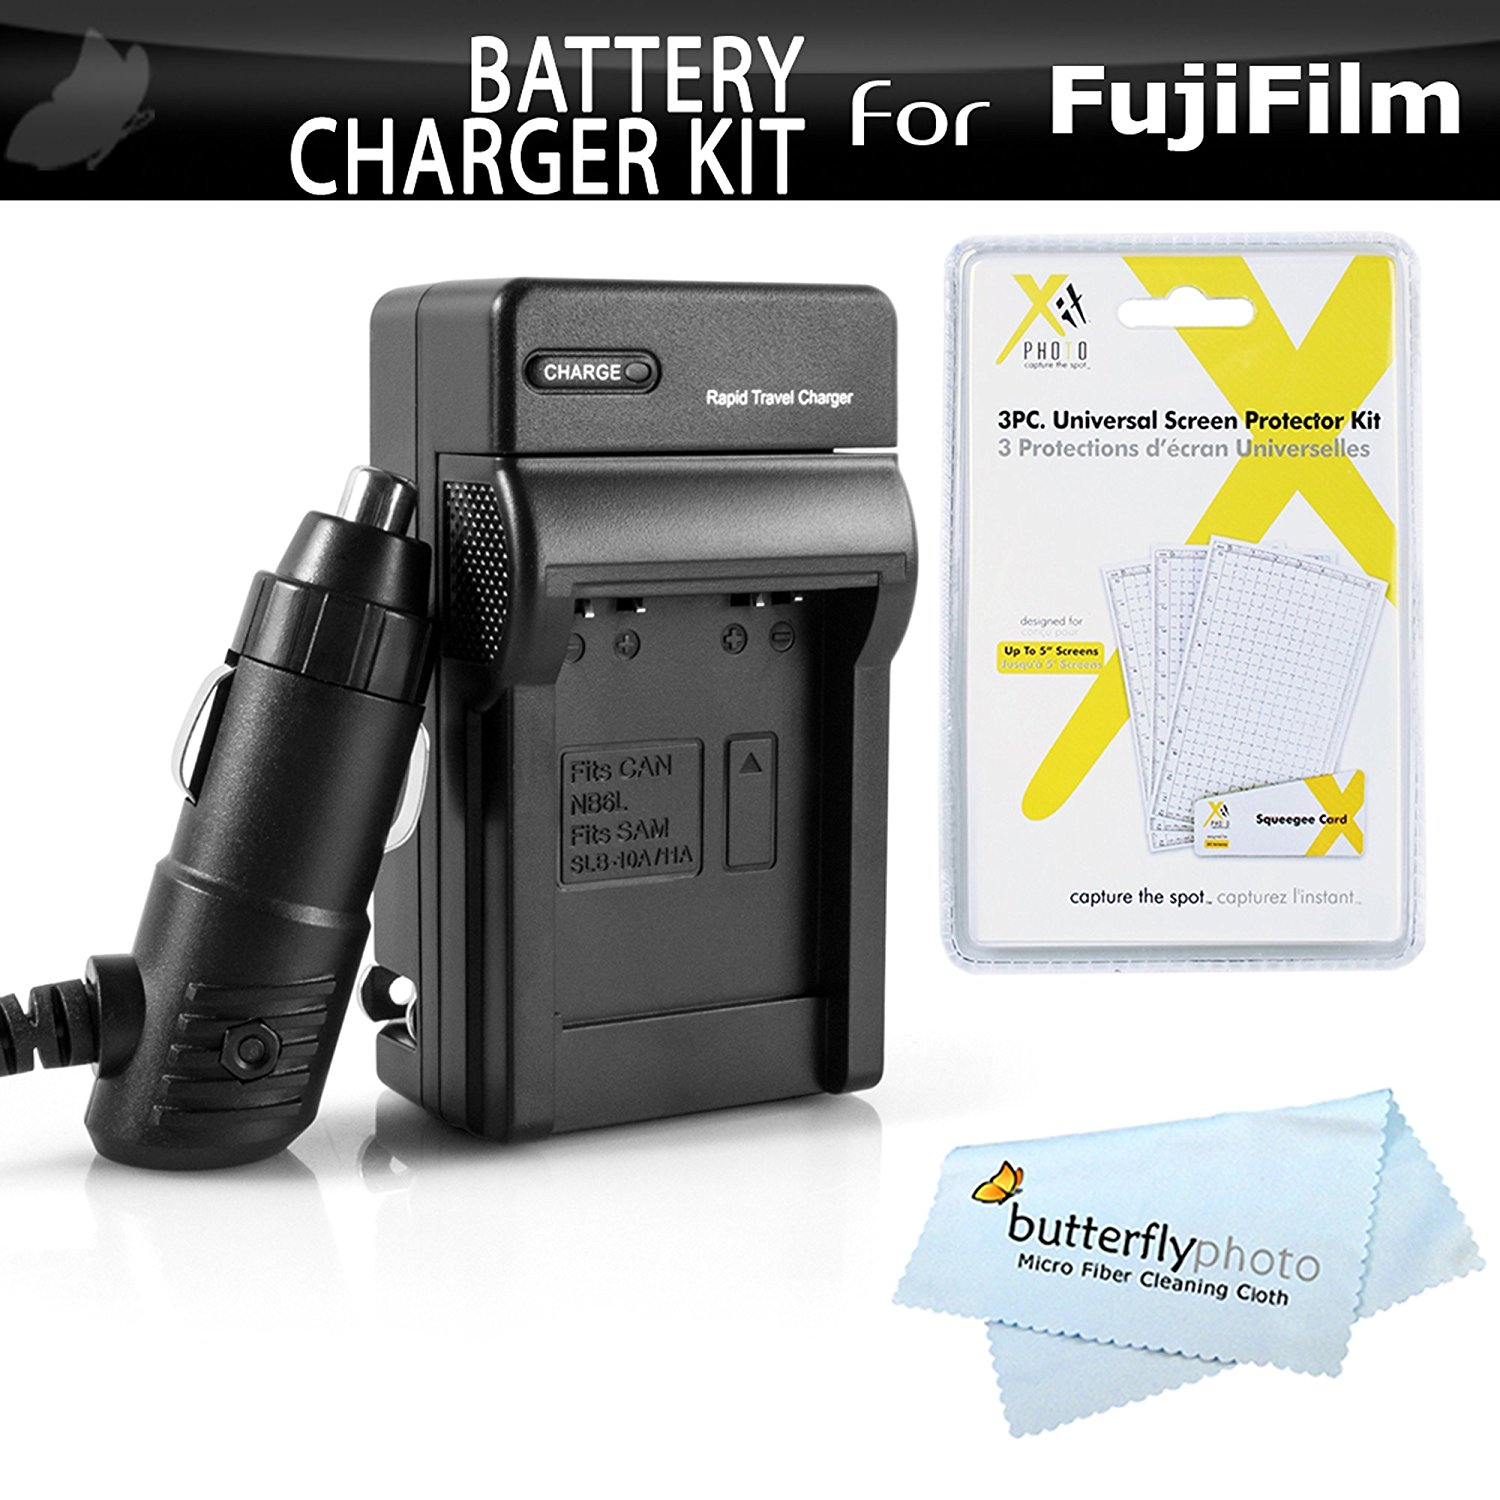 Battery Charger Kit For Fuji Fujifilm FinePix HS30EXR, X-Pro1, X-Pro2, HS33EXR, Fujifilm X-E1, X-M1, X-A1, X-E2, HS50EXR, X-T1, X-A2, X-T10, X-A3, X-T2, X-T1 IR Digital Camera Includes Rapid Travel Charger For Fuji NP-W126, NP-W126s Battery